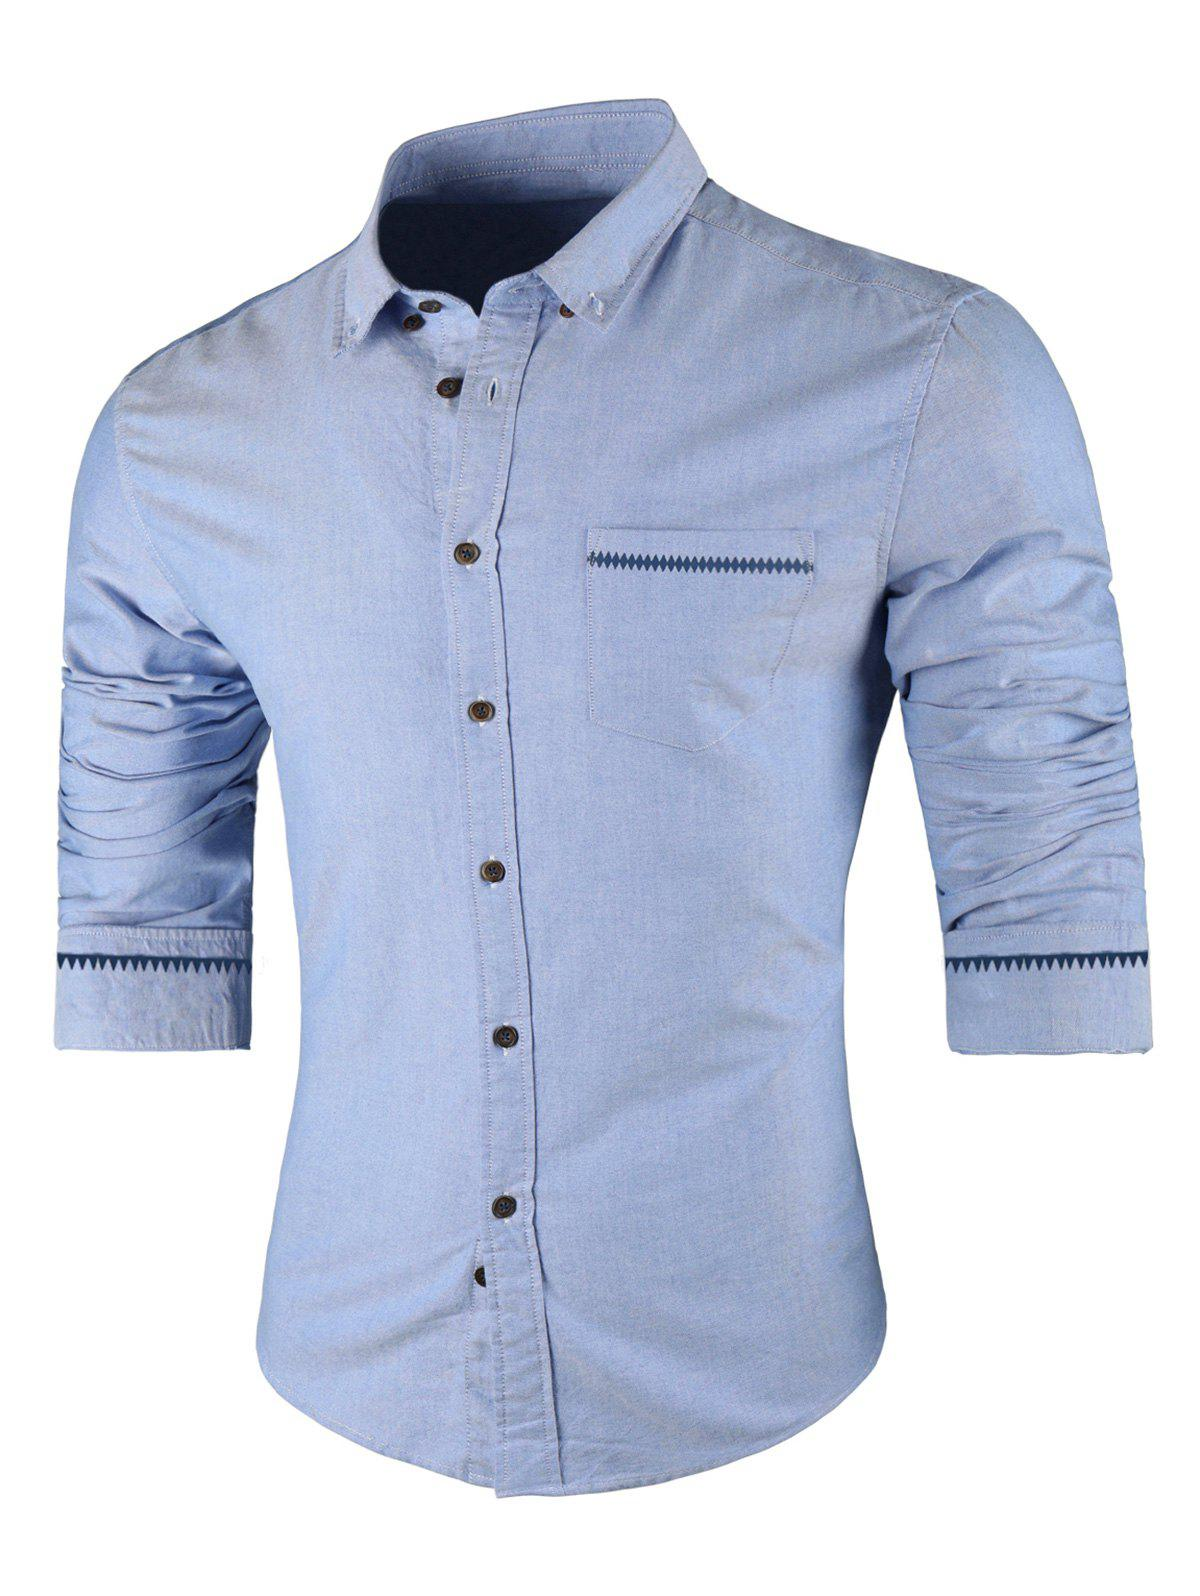 Long Sleeved Button Down Casual Shirt - LIGHT BLUE XL